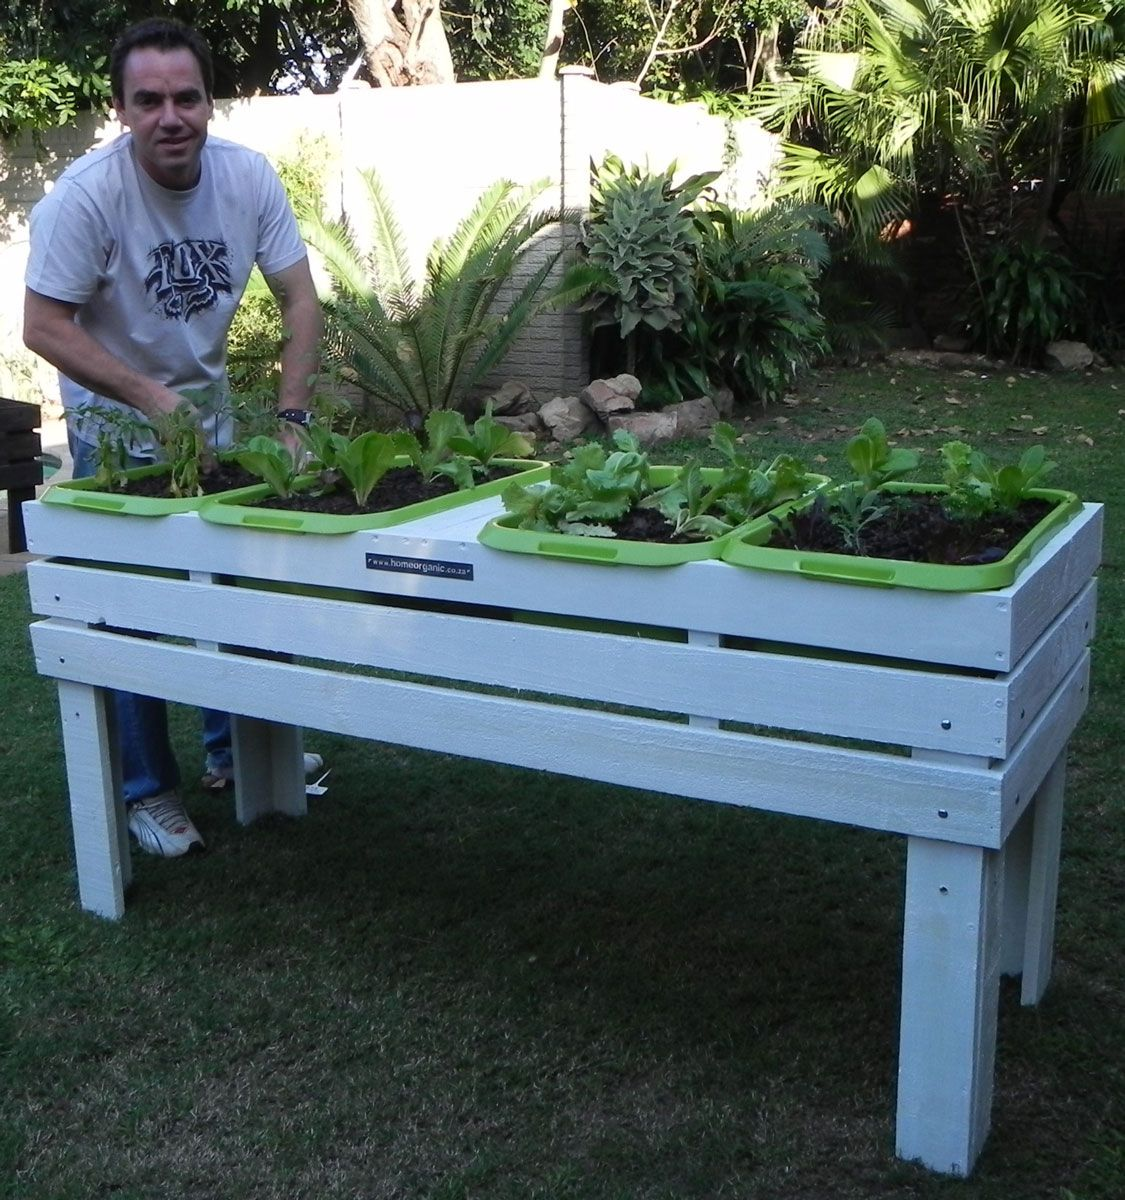 20 Brilliant Raised Garden Bed Ideas You Can Make In A: Gardening And Save Your Back.